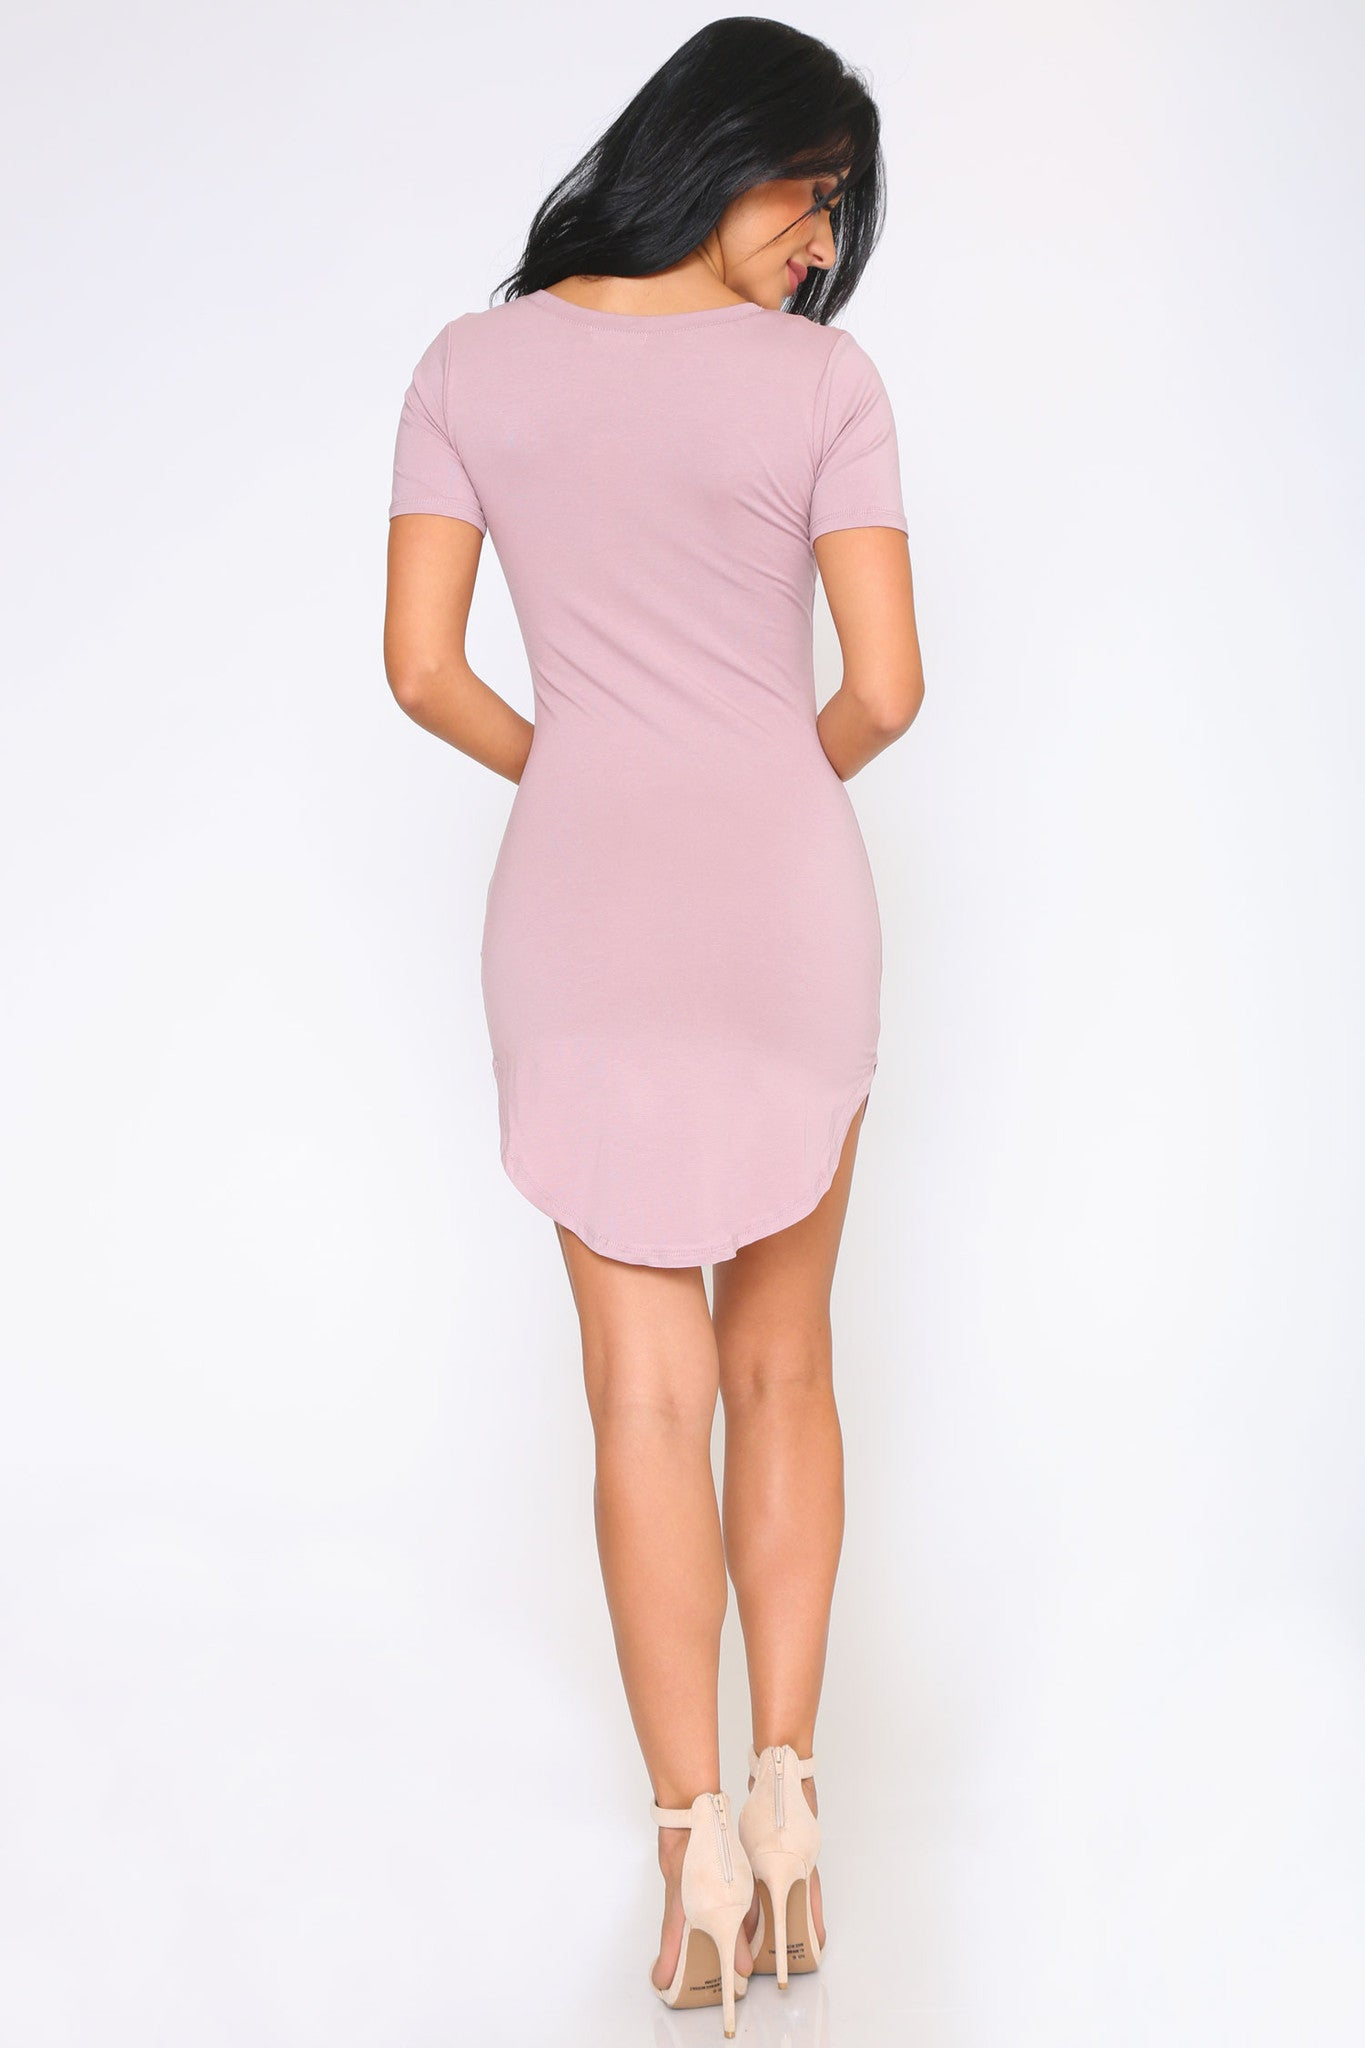 STEPHANIE DRESS - Glam Envy - 3